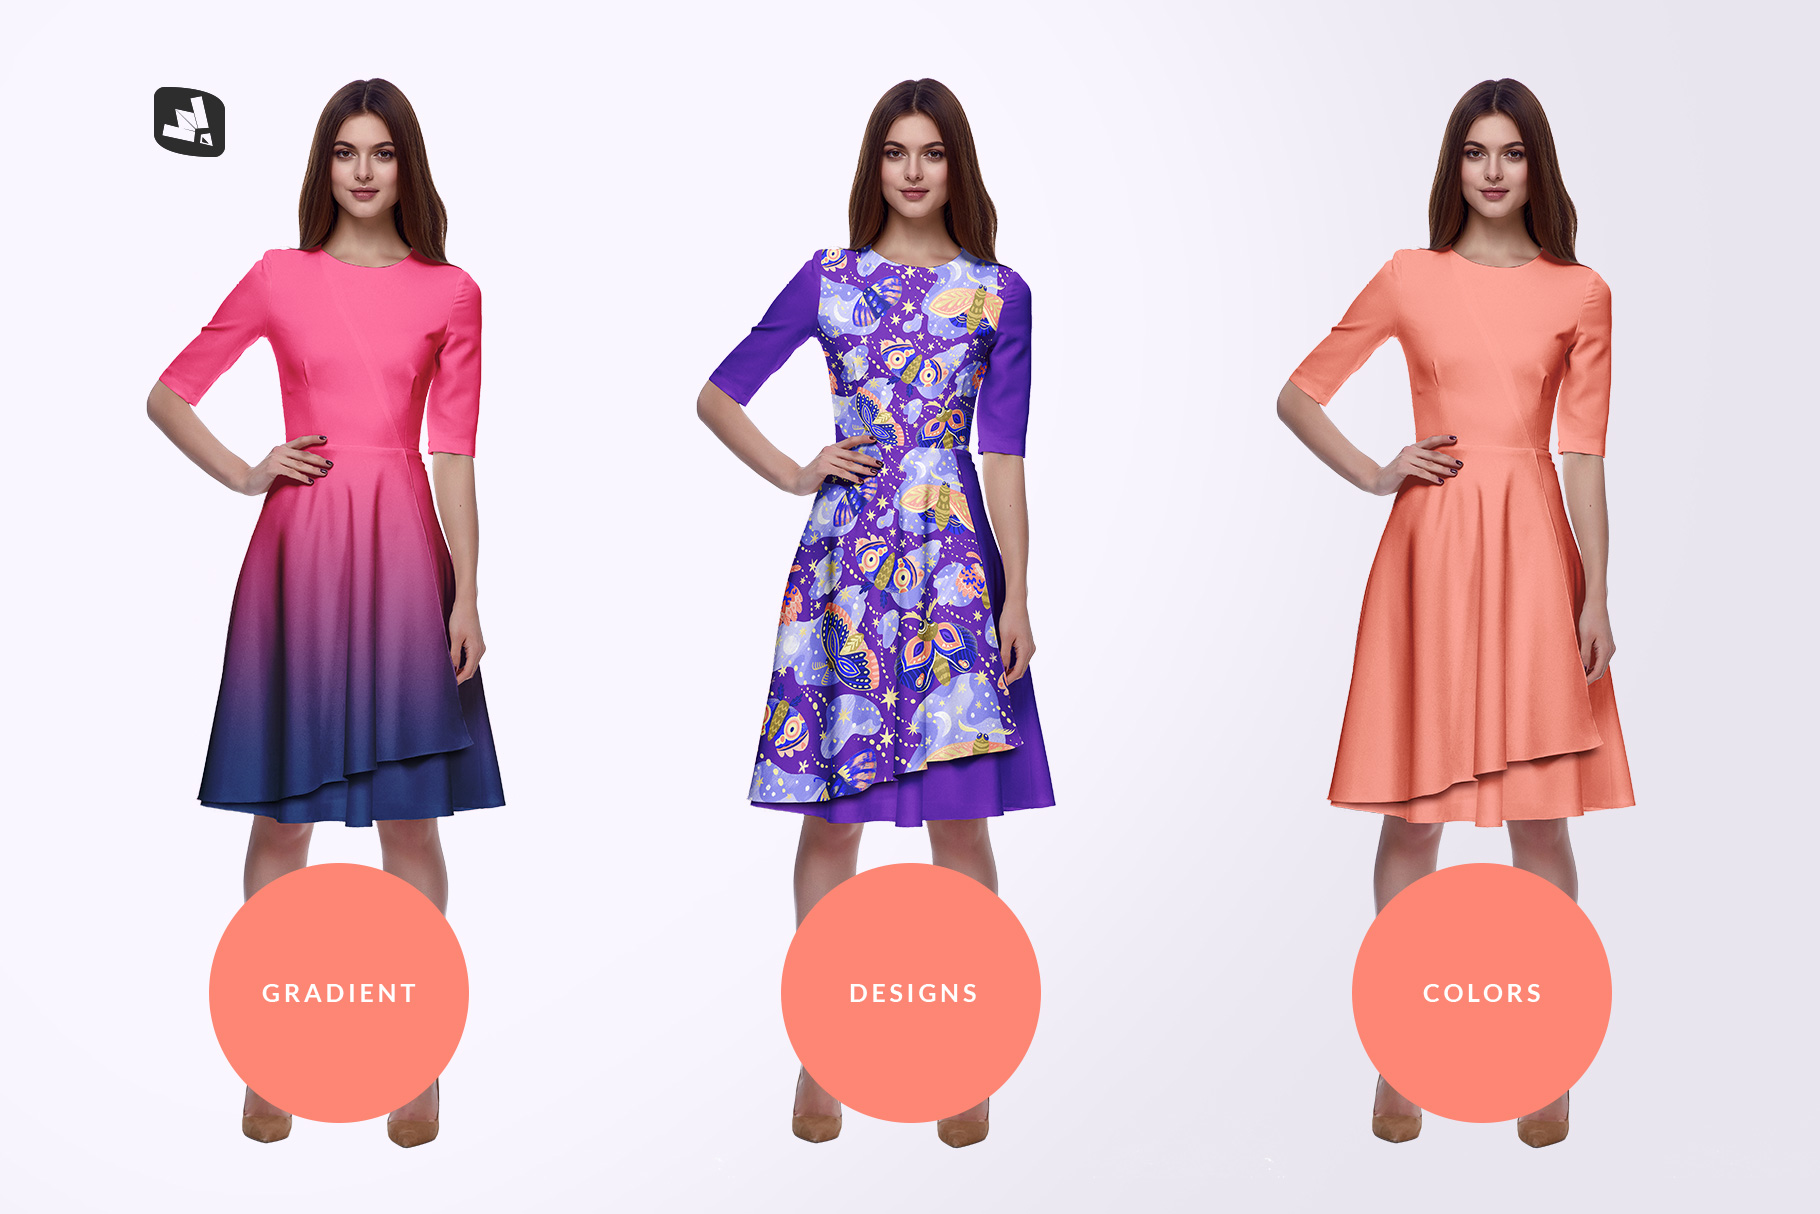 types of the female formal dress mockup